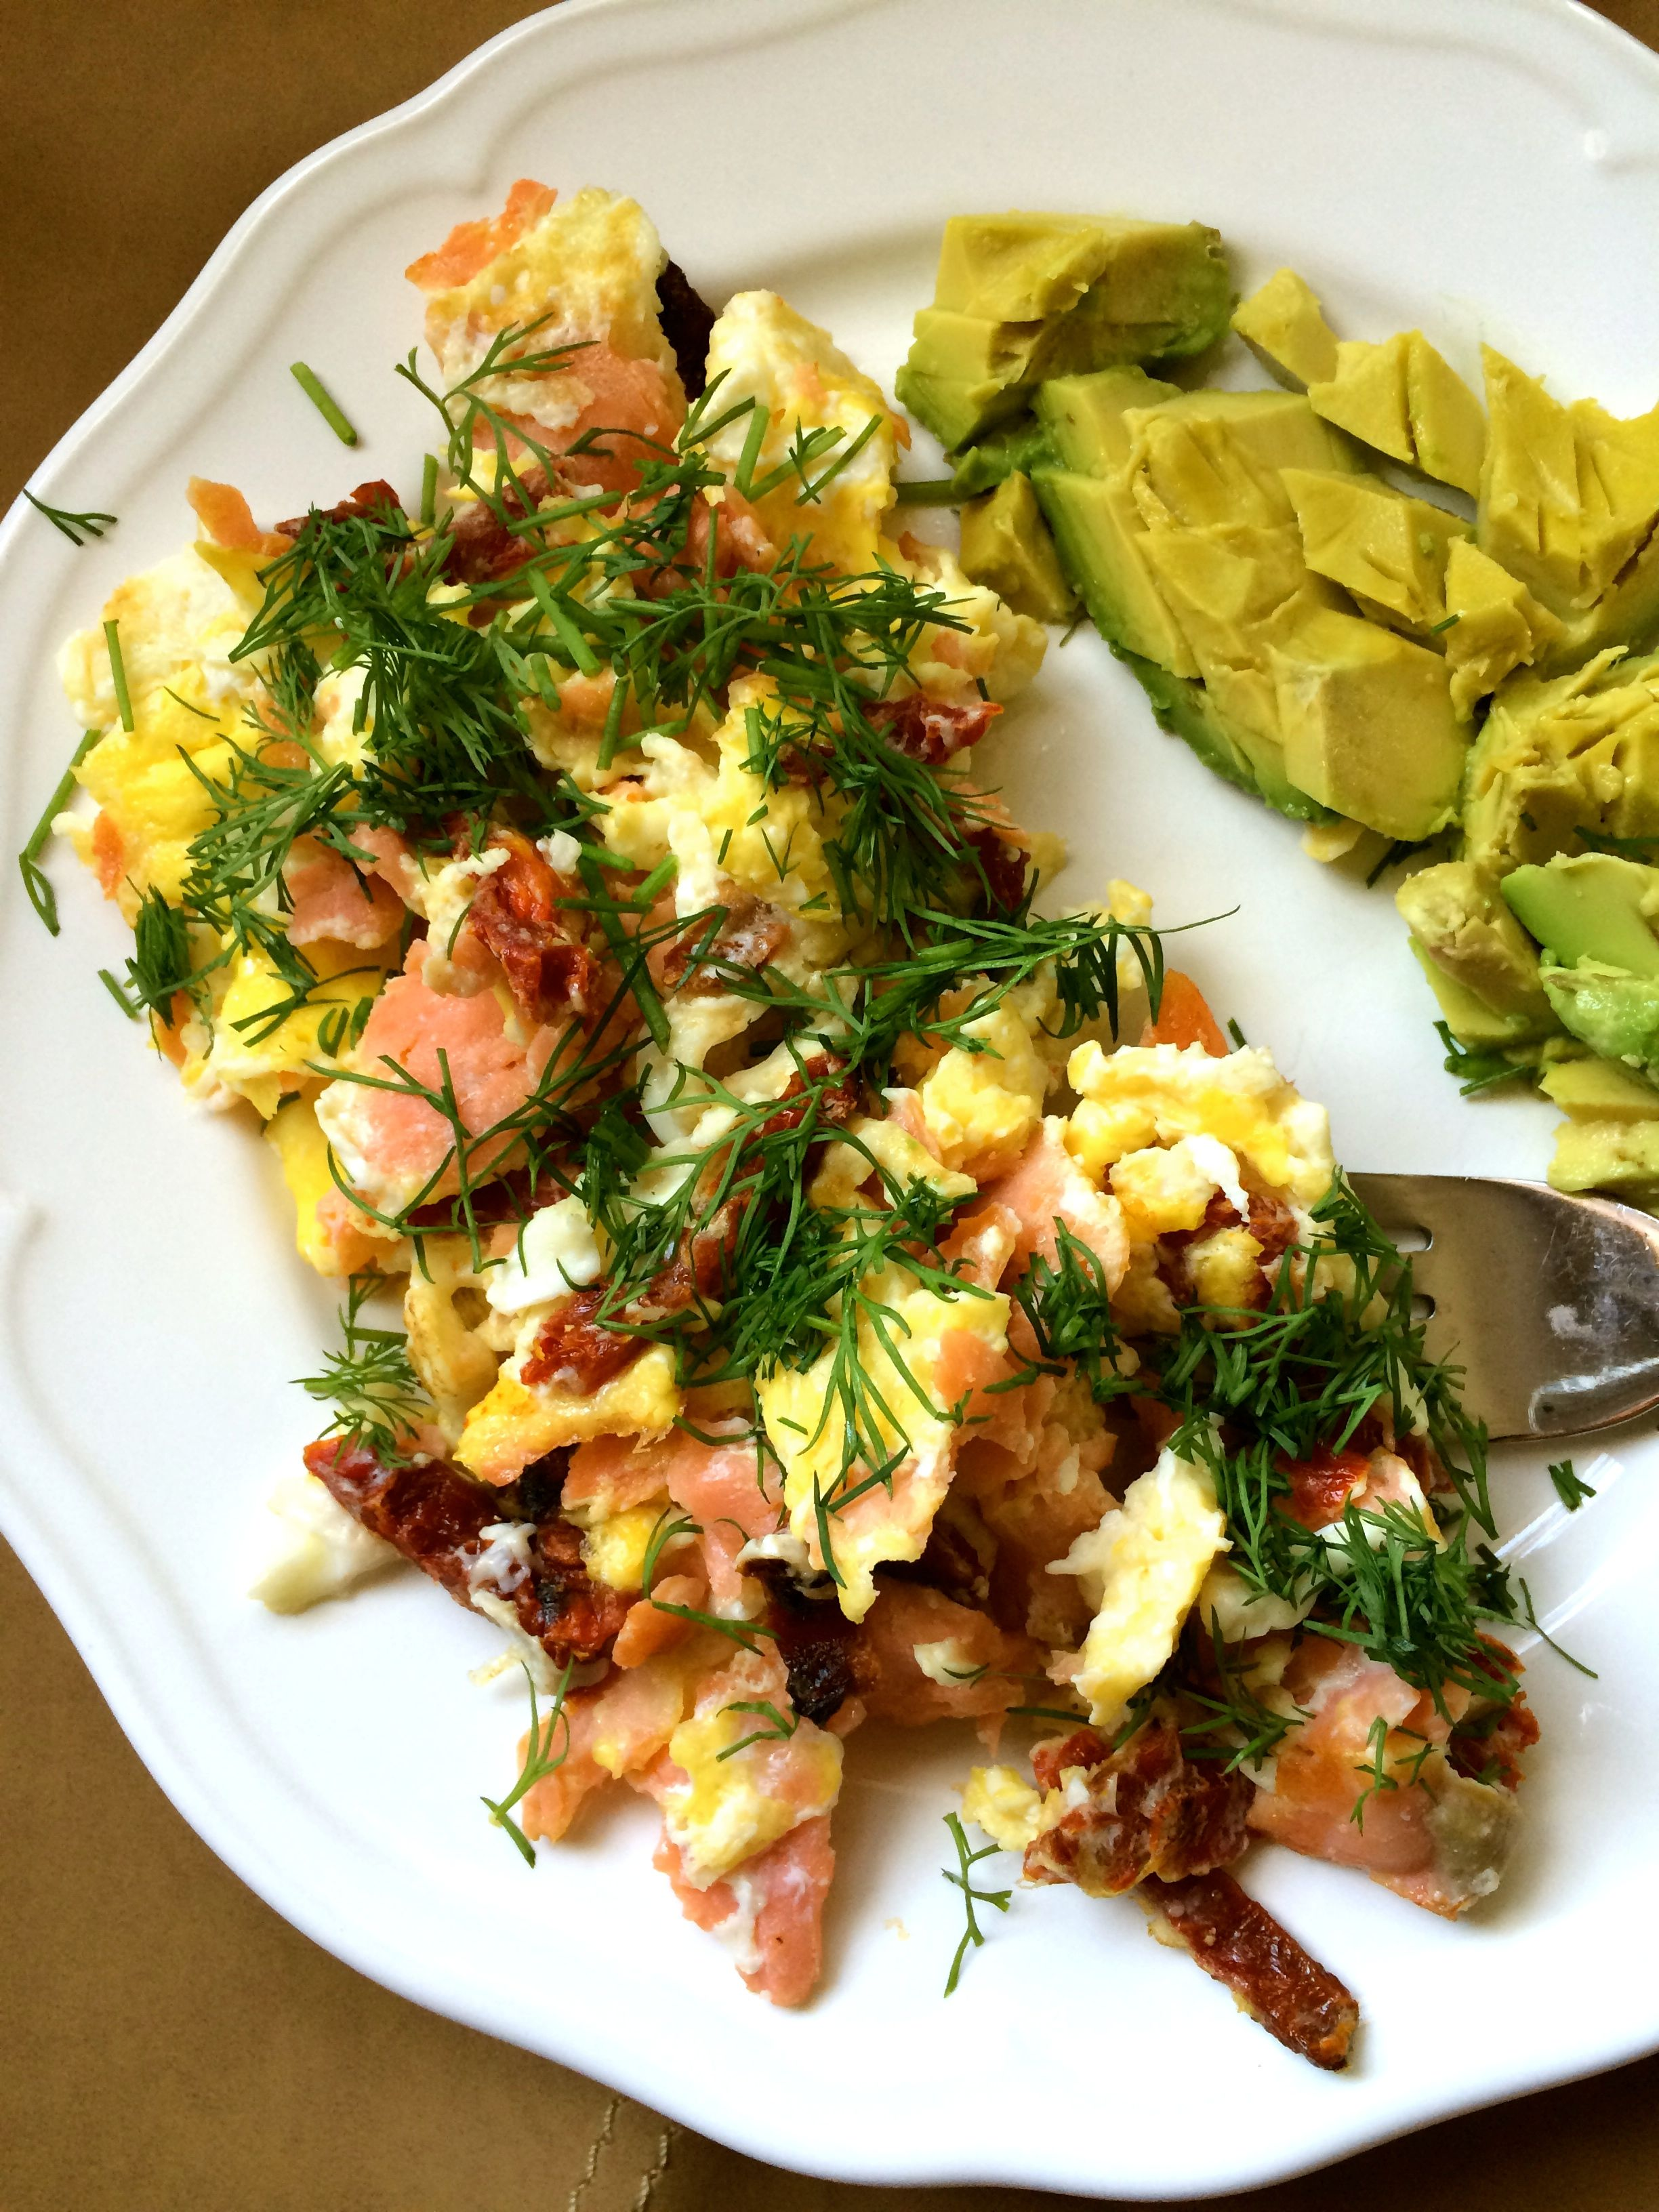 salmon and egg scramble